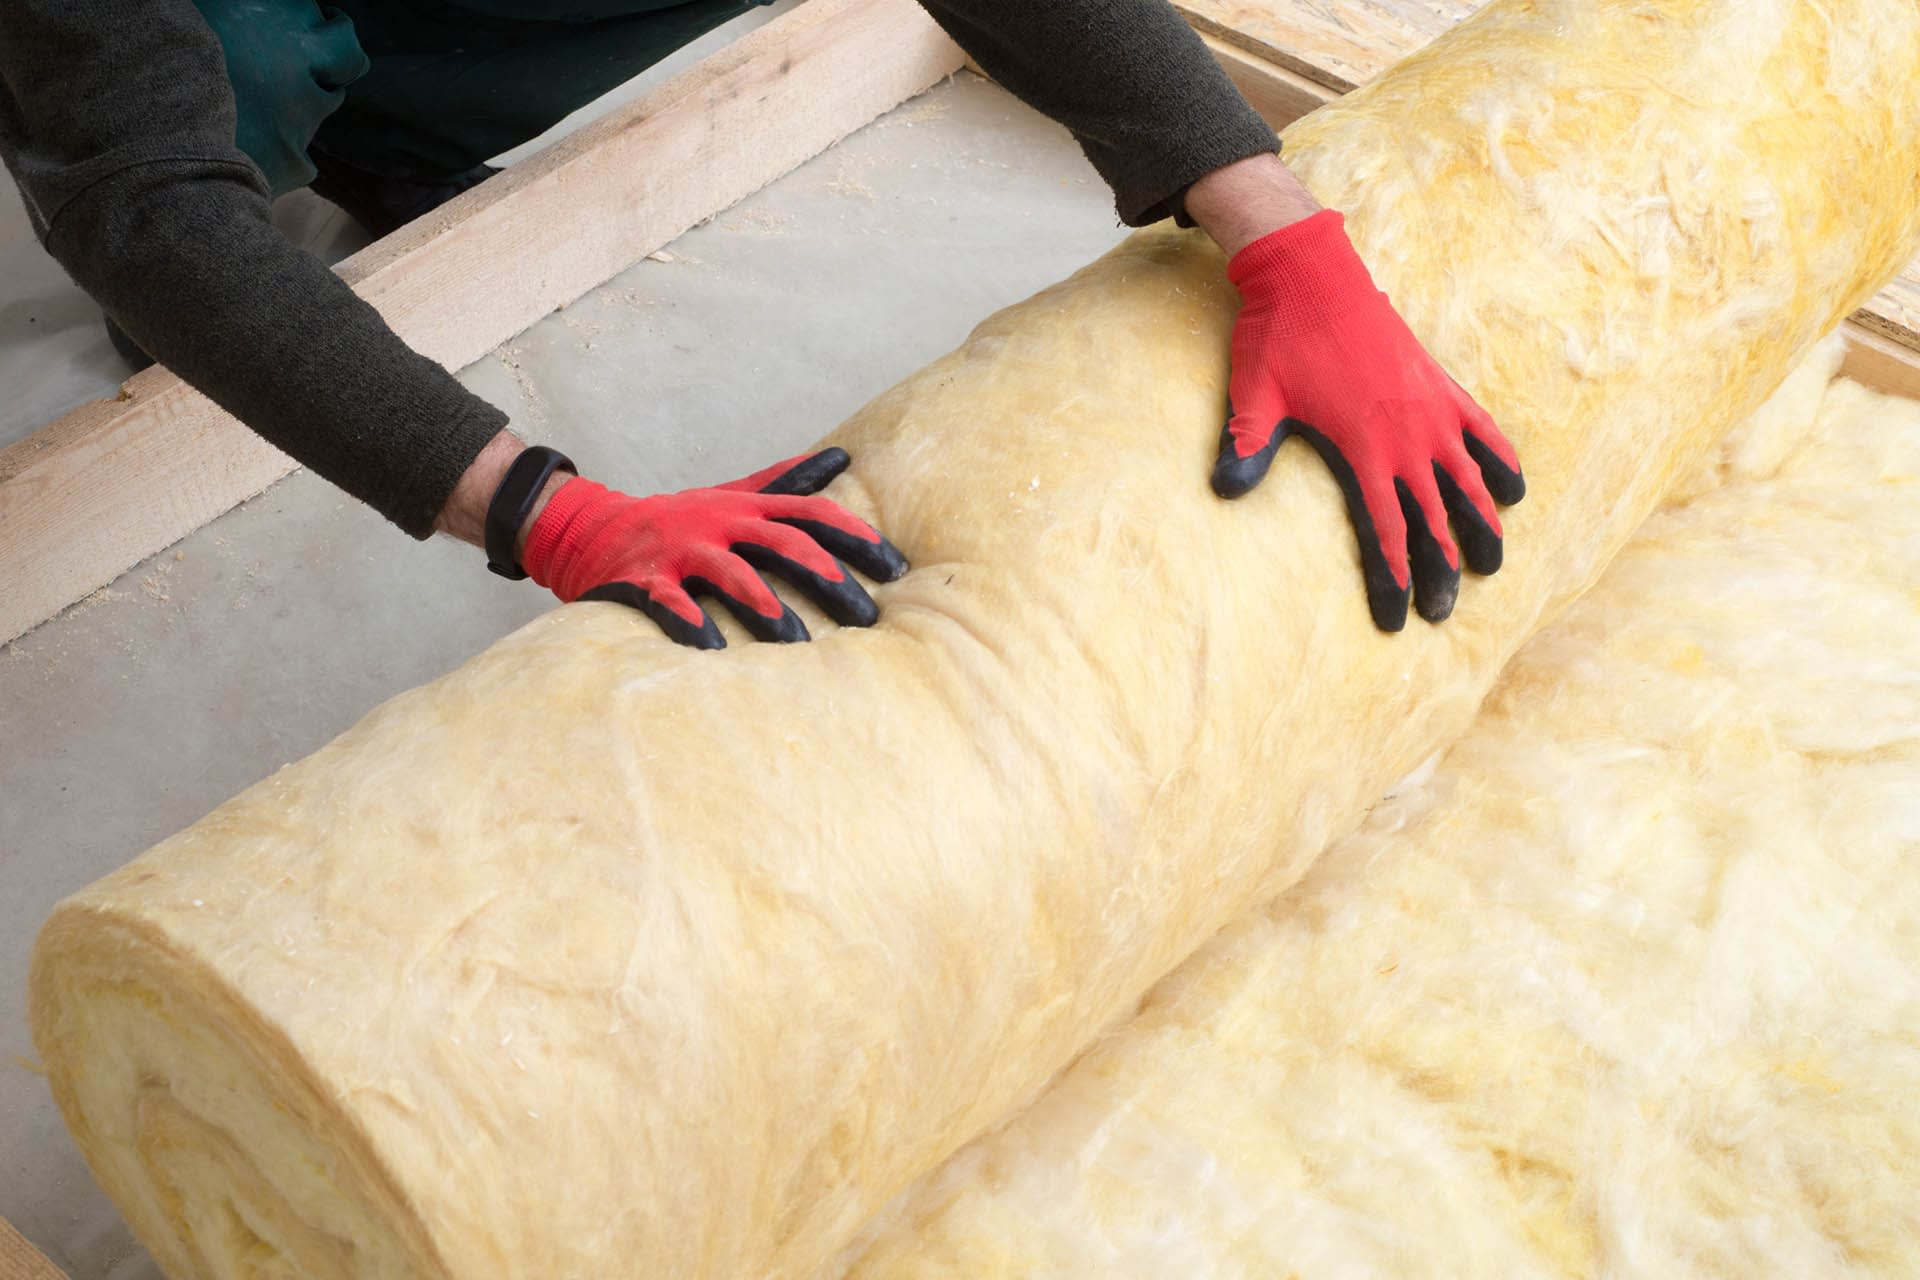 thermal-insulation-wool-rolls-worker-handling-building-materials